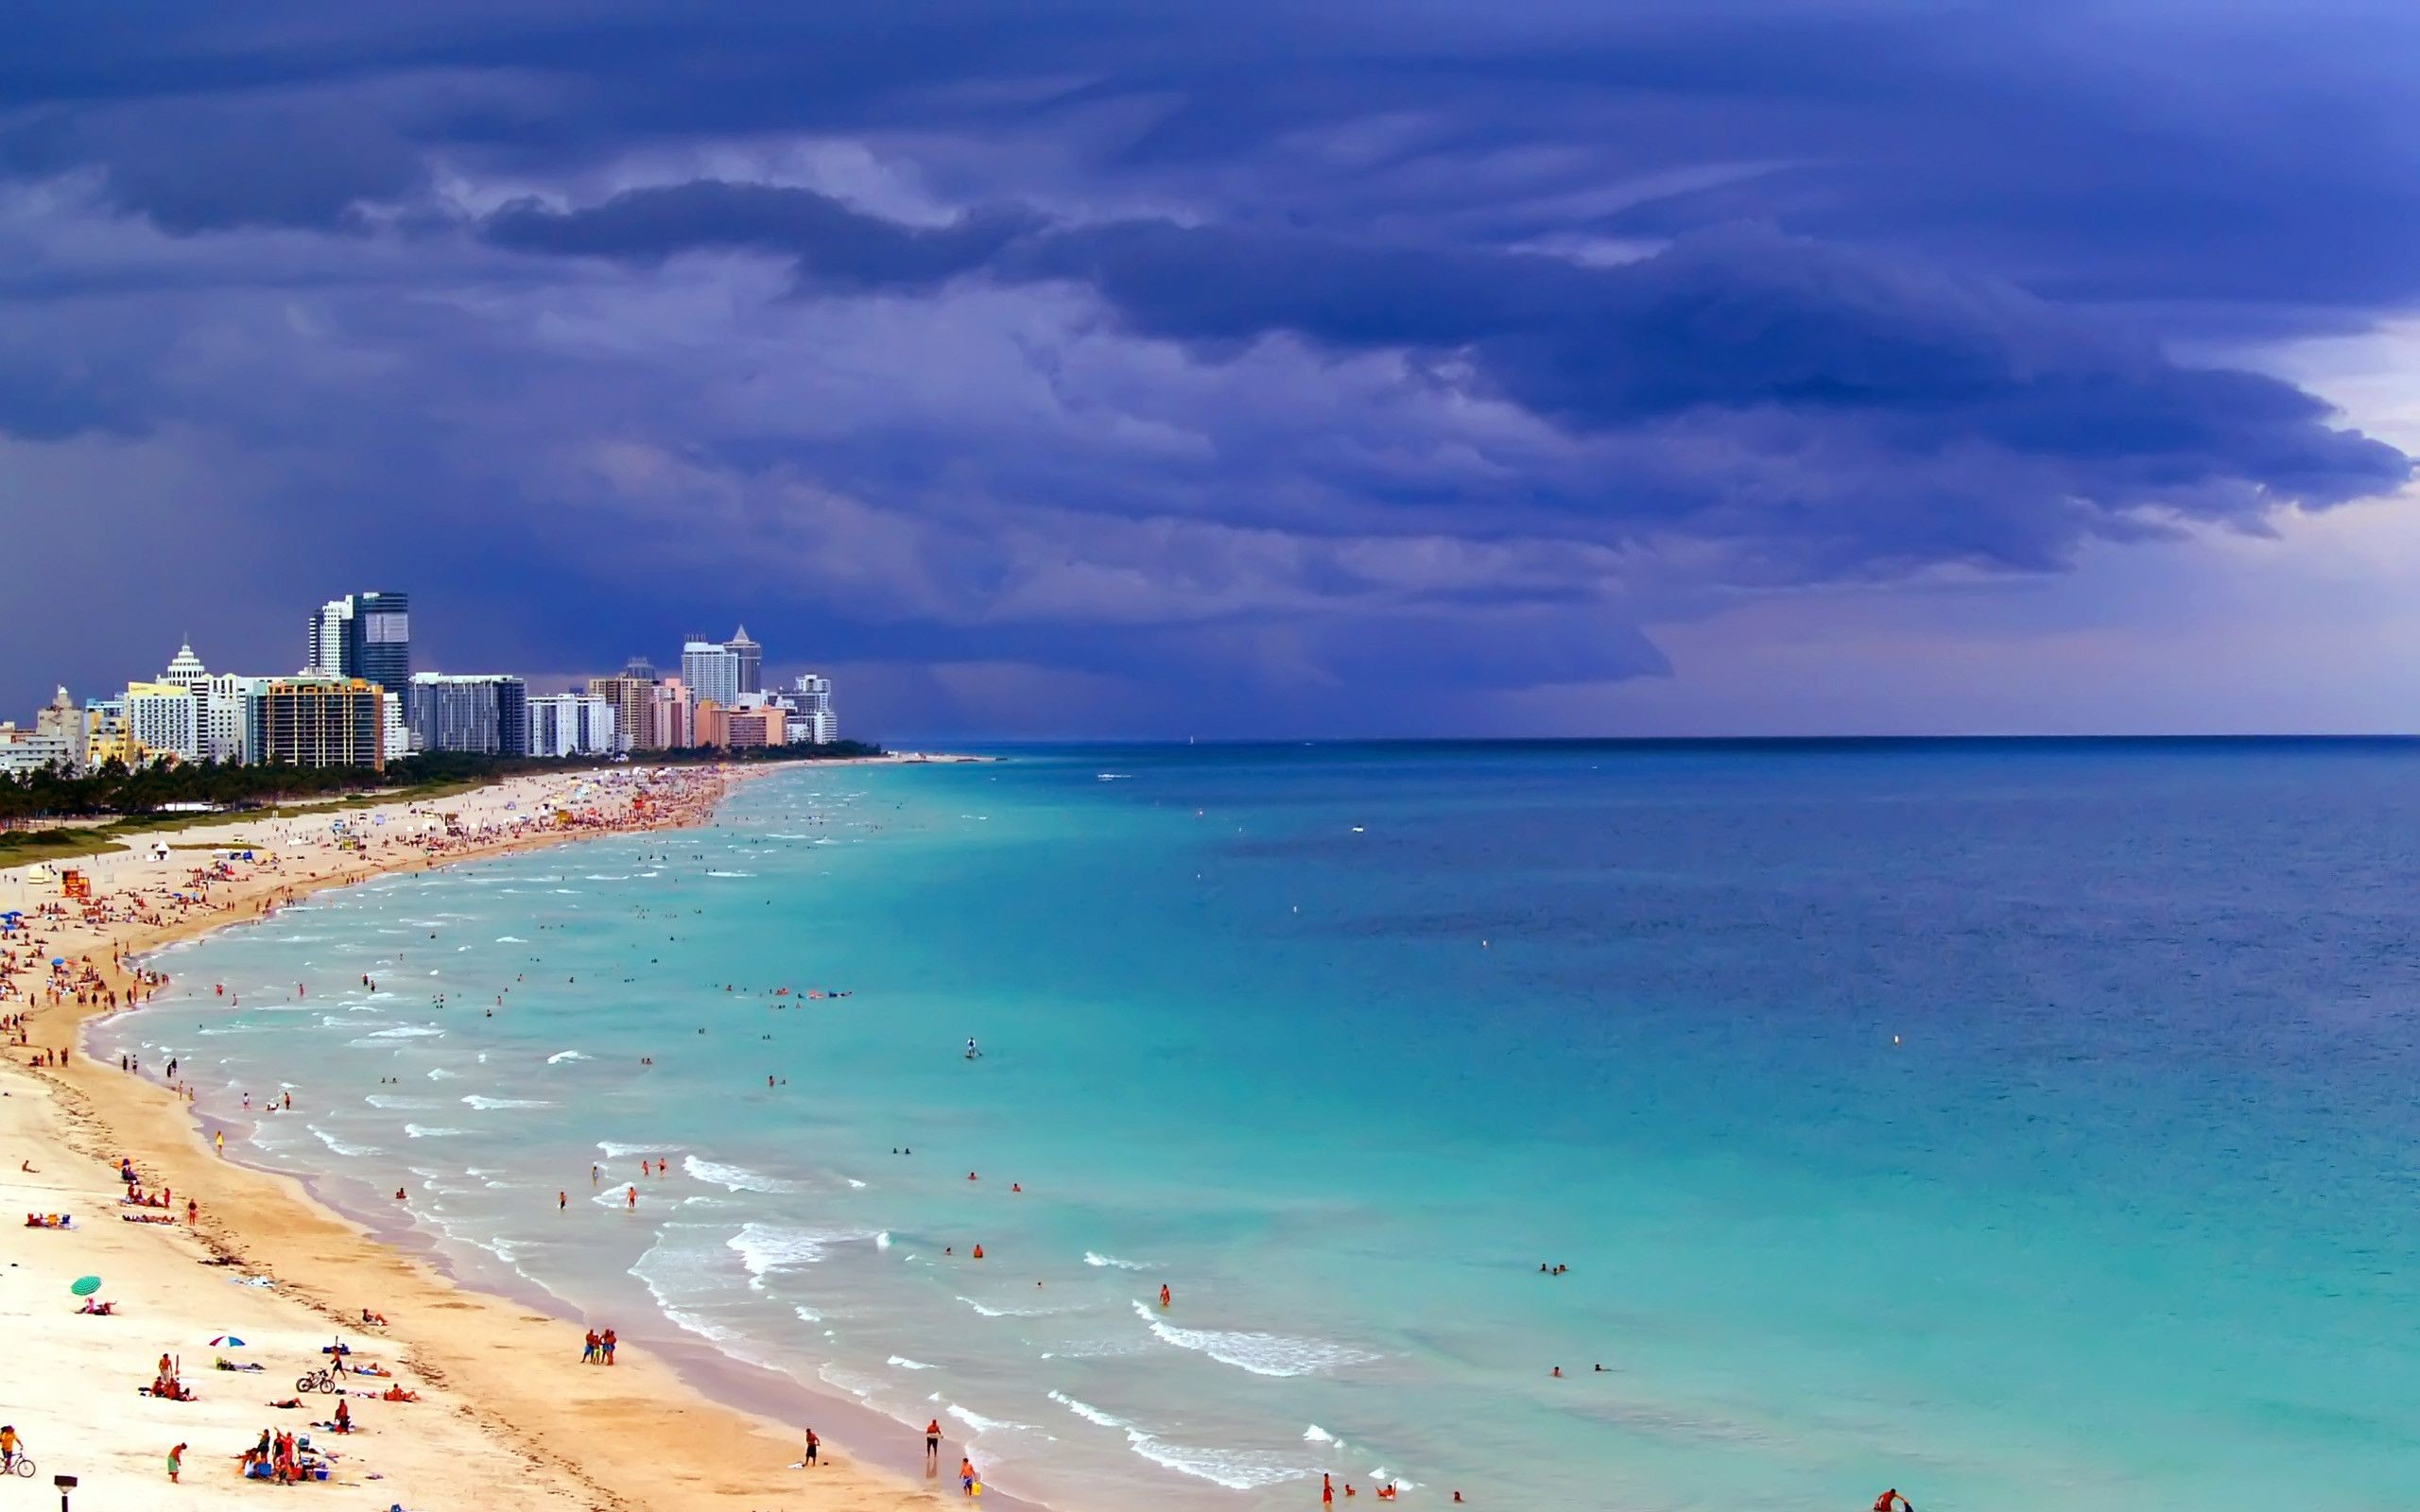 2560x1600 Marble Beach Gulf Desktop PC And Mac Wallpaper 1920A 1080 Wallpapers For